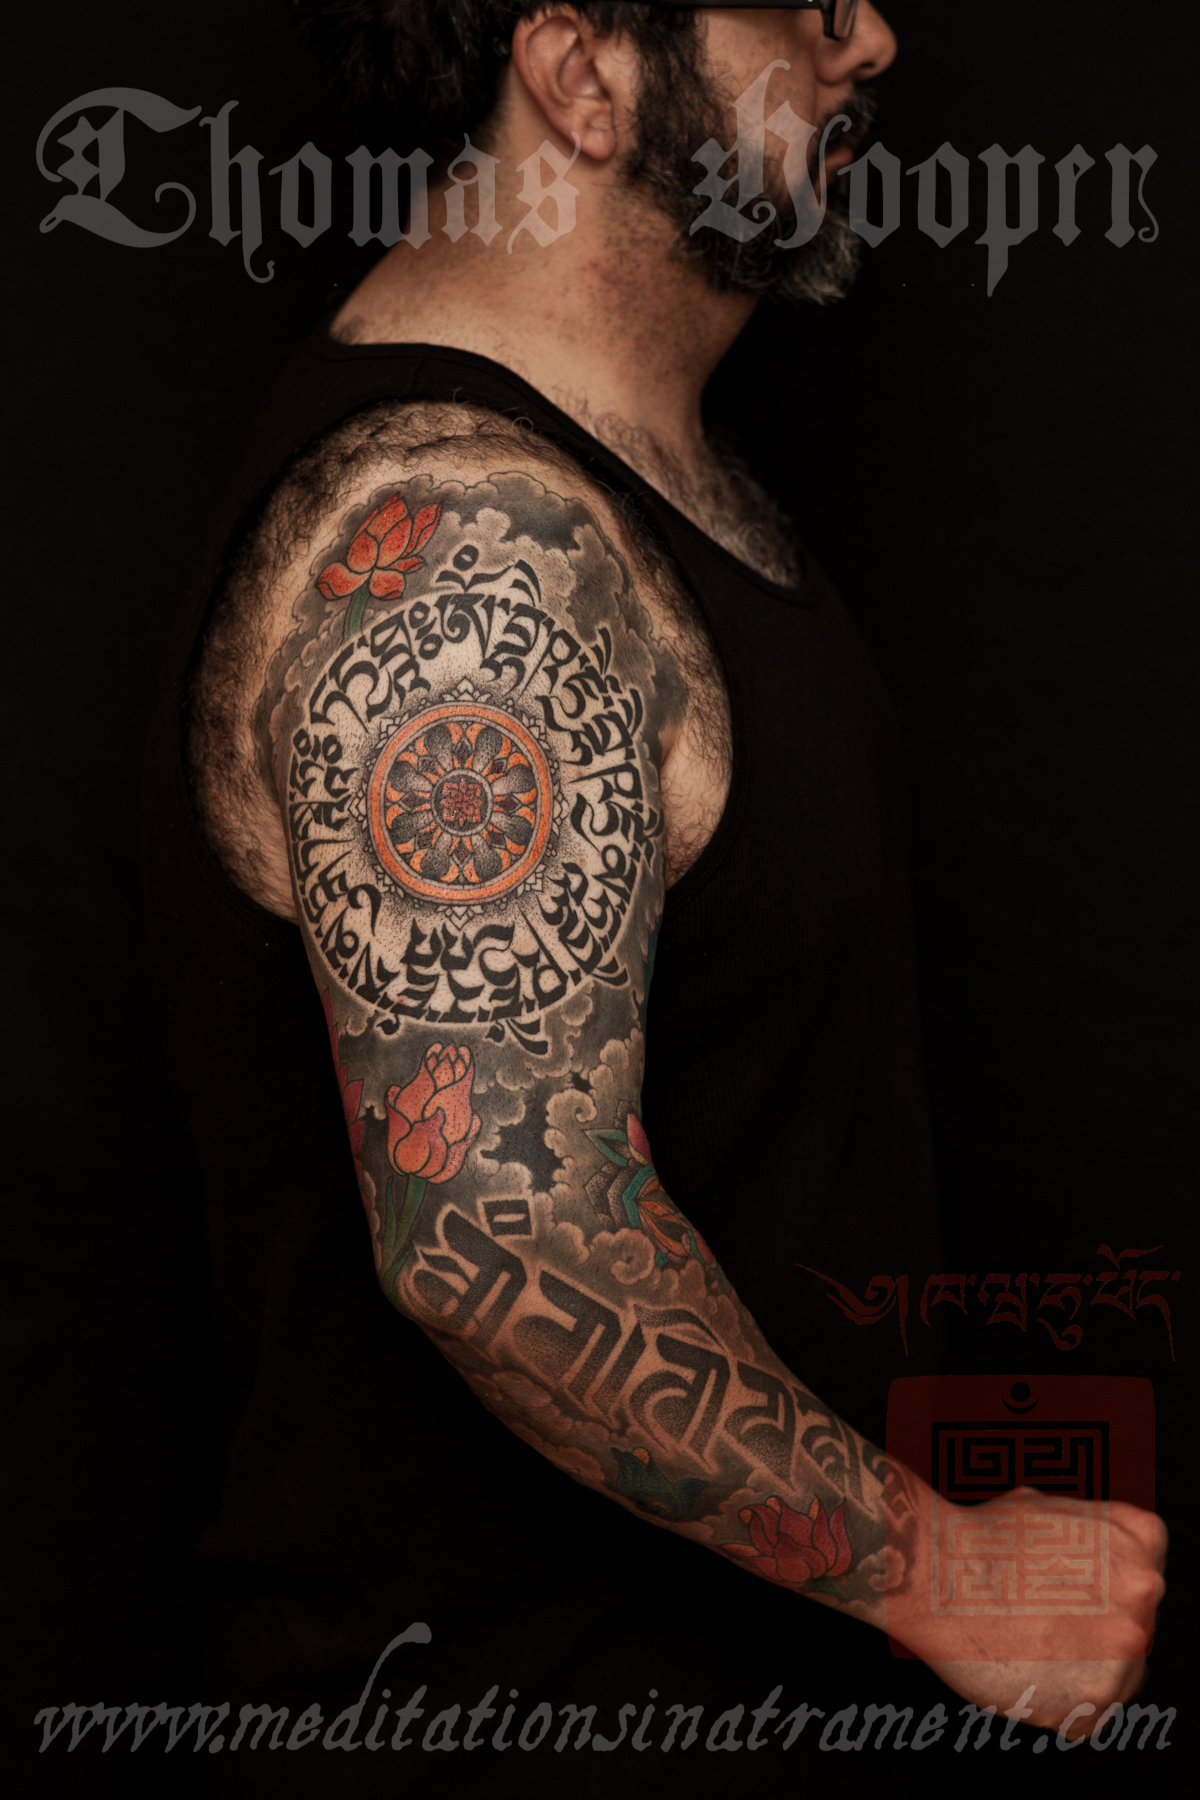 Tibetan Sleeve Tattoo By Thomas Hooper Nyc – 009 – August Ideas And Designs